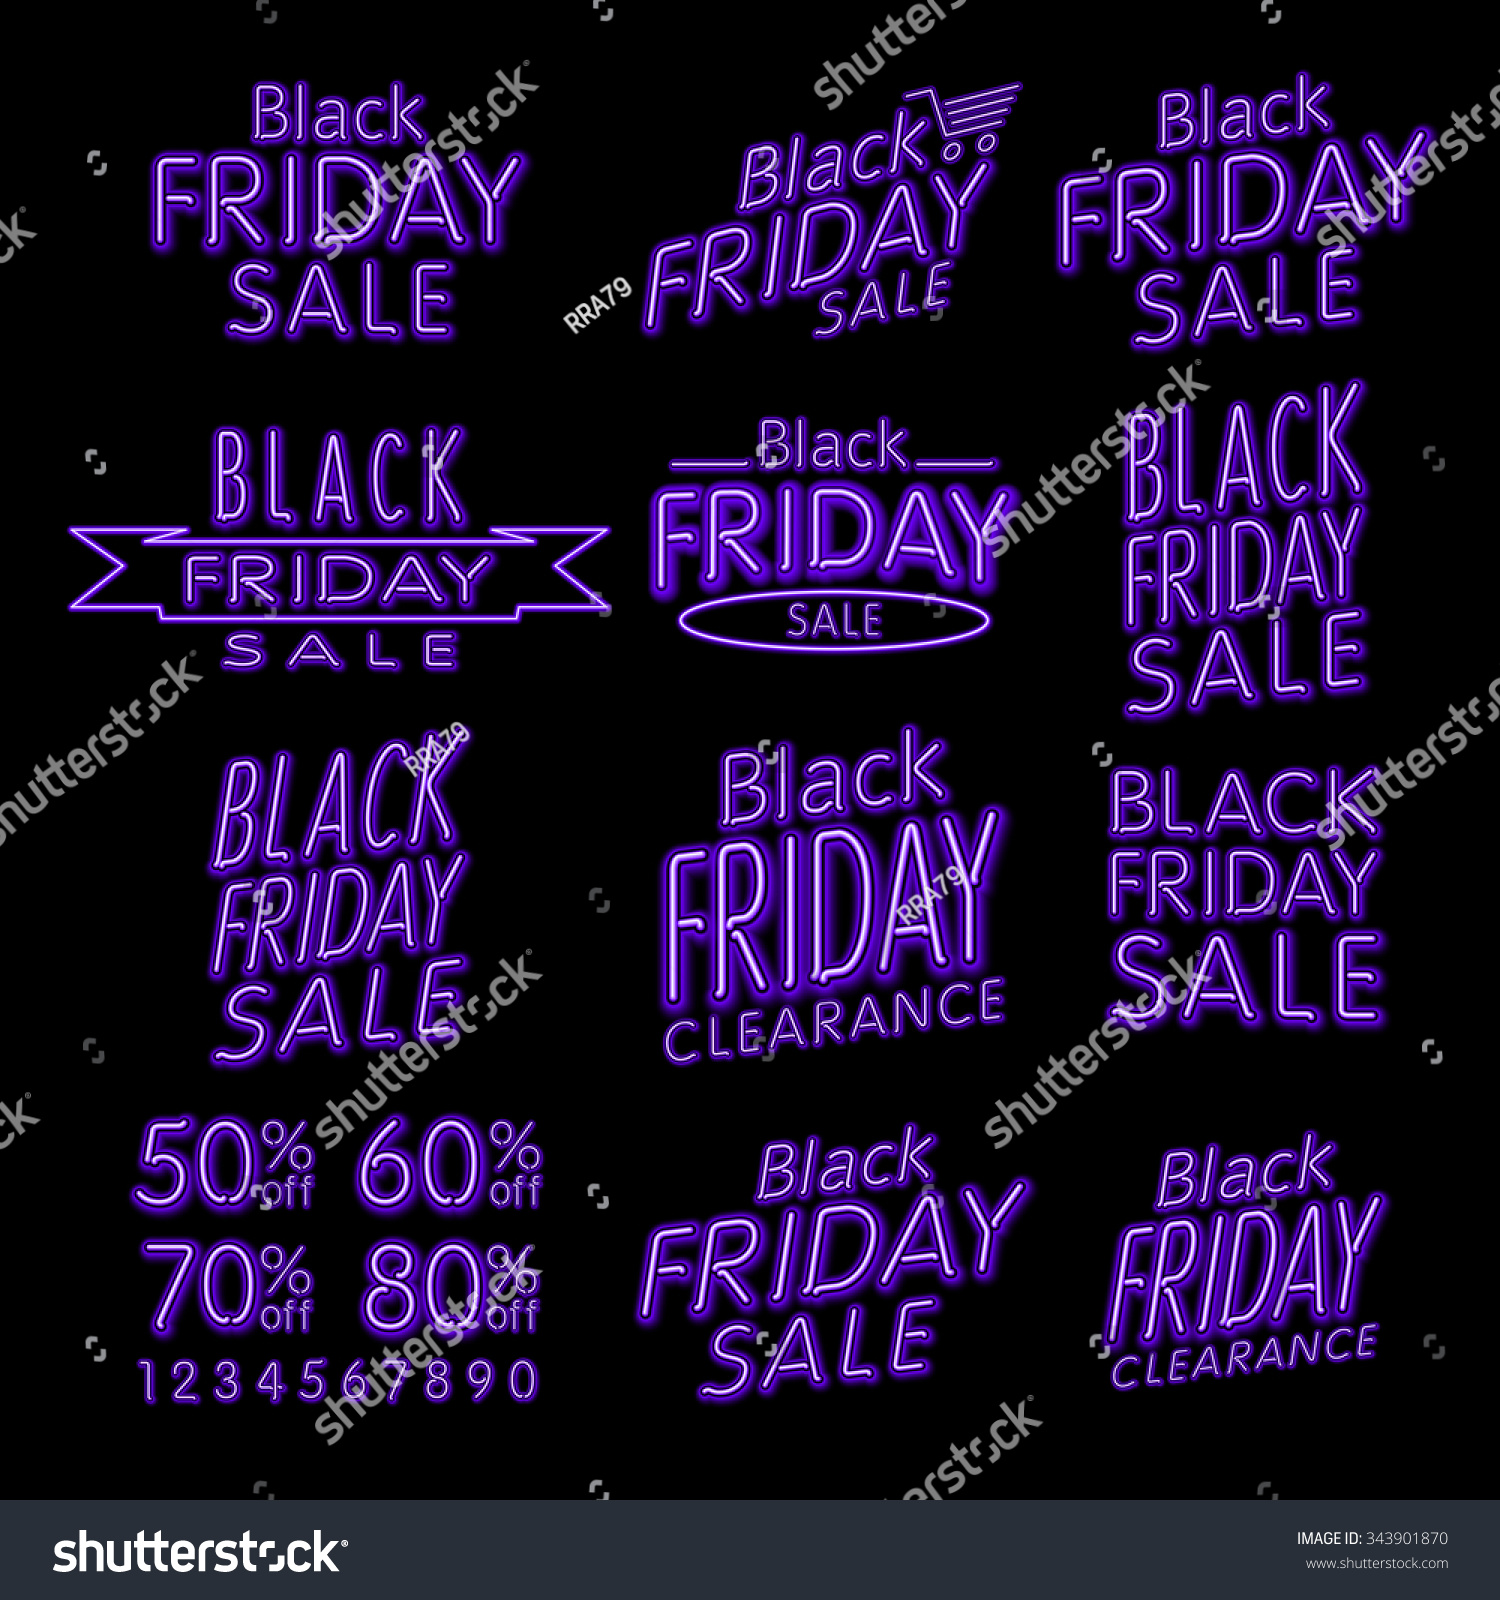 Black Friday Designs NEON Retro Style Elements Vintage Sale Clearance Set Black Friday retro light frame ART